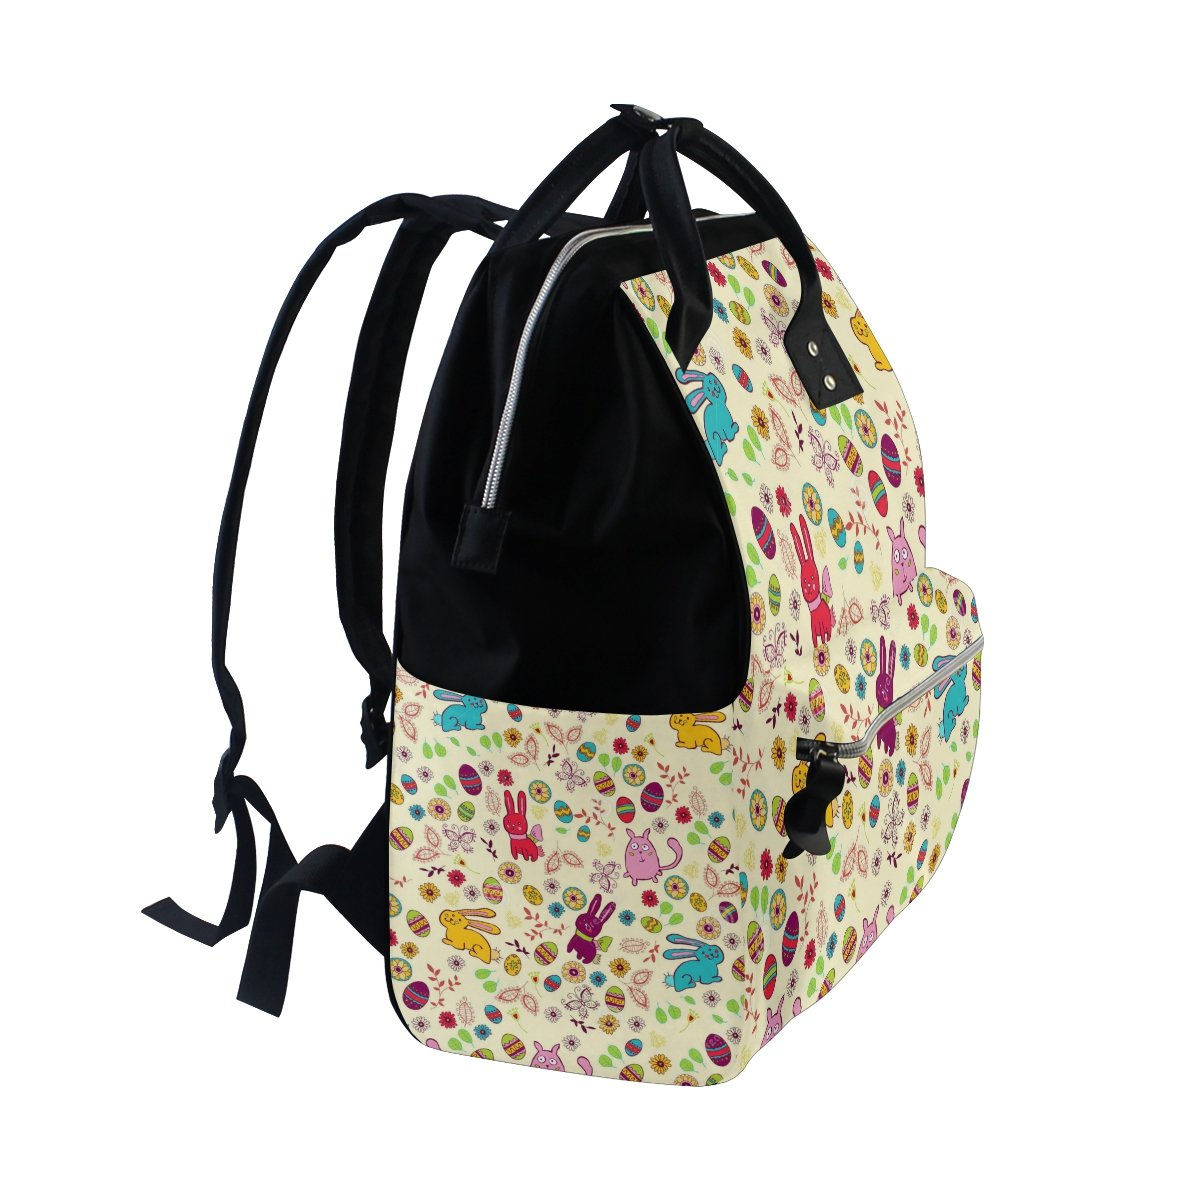 Diaper Bags Backpack Purse Mummy Backpack Fashion Mummy Maternity Nappy Bag Cool Cute Travel Backpack Laptop Backpack with Colorful Rabbits and Eggs Daypack for Women Girls Kids